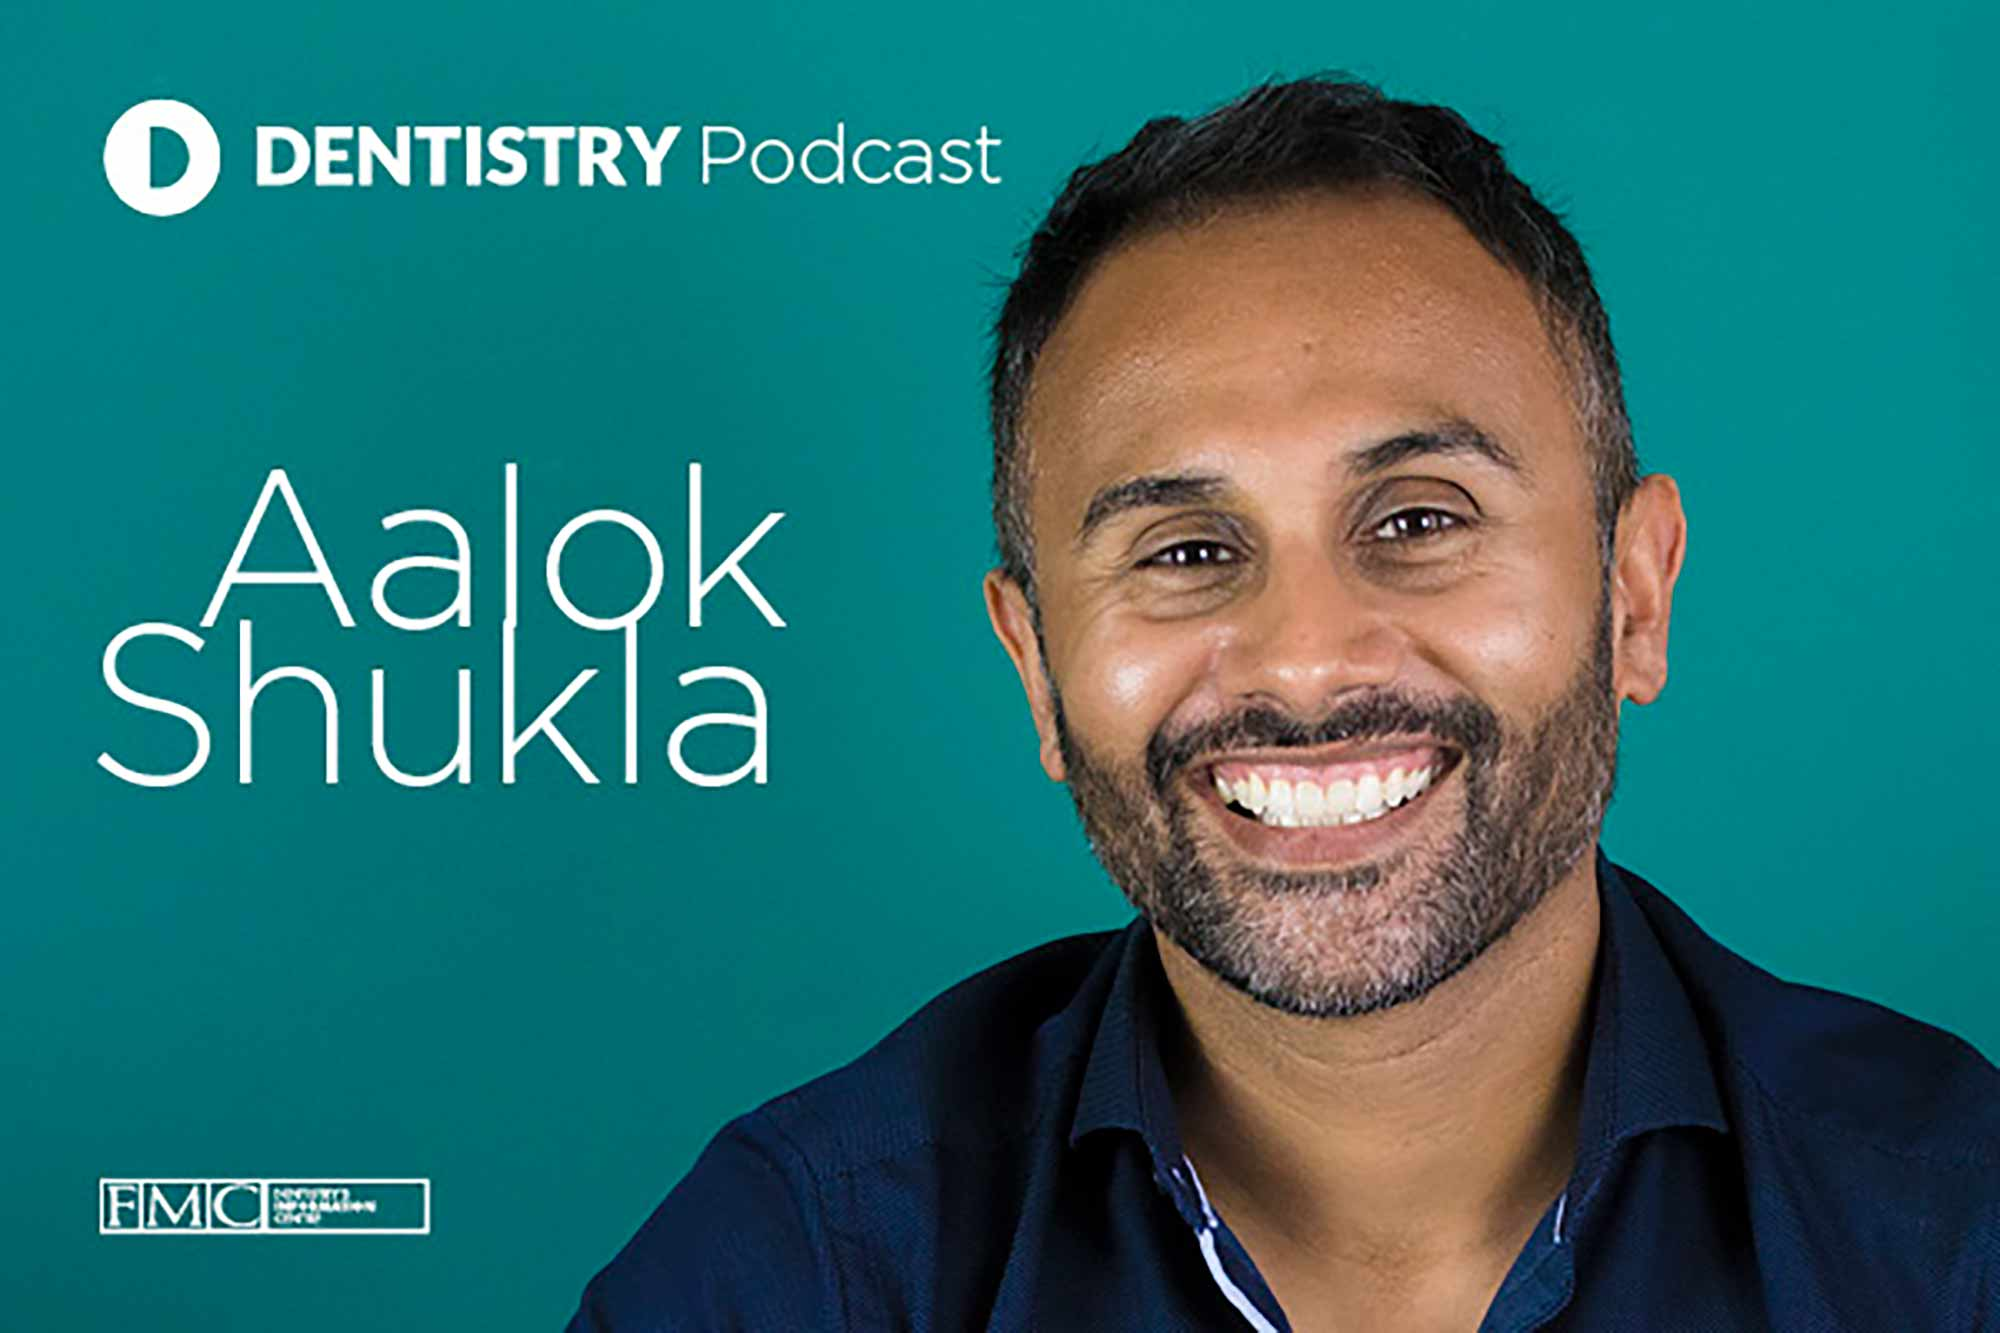 Aalok Shukla speaks about the ins and outs of teledentistry and why he thinks it enhances business in Dentistry Online's latest podcast